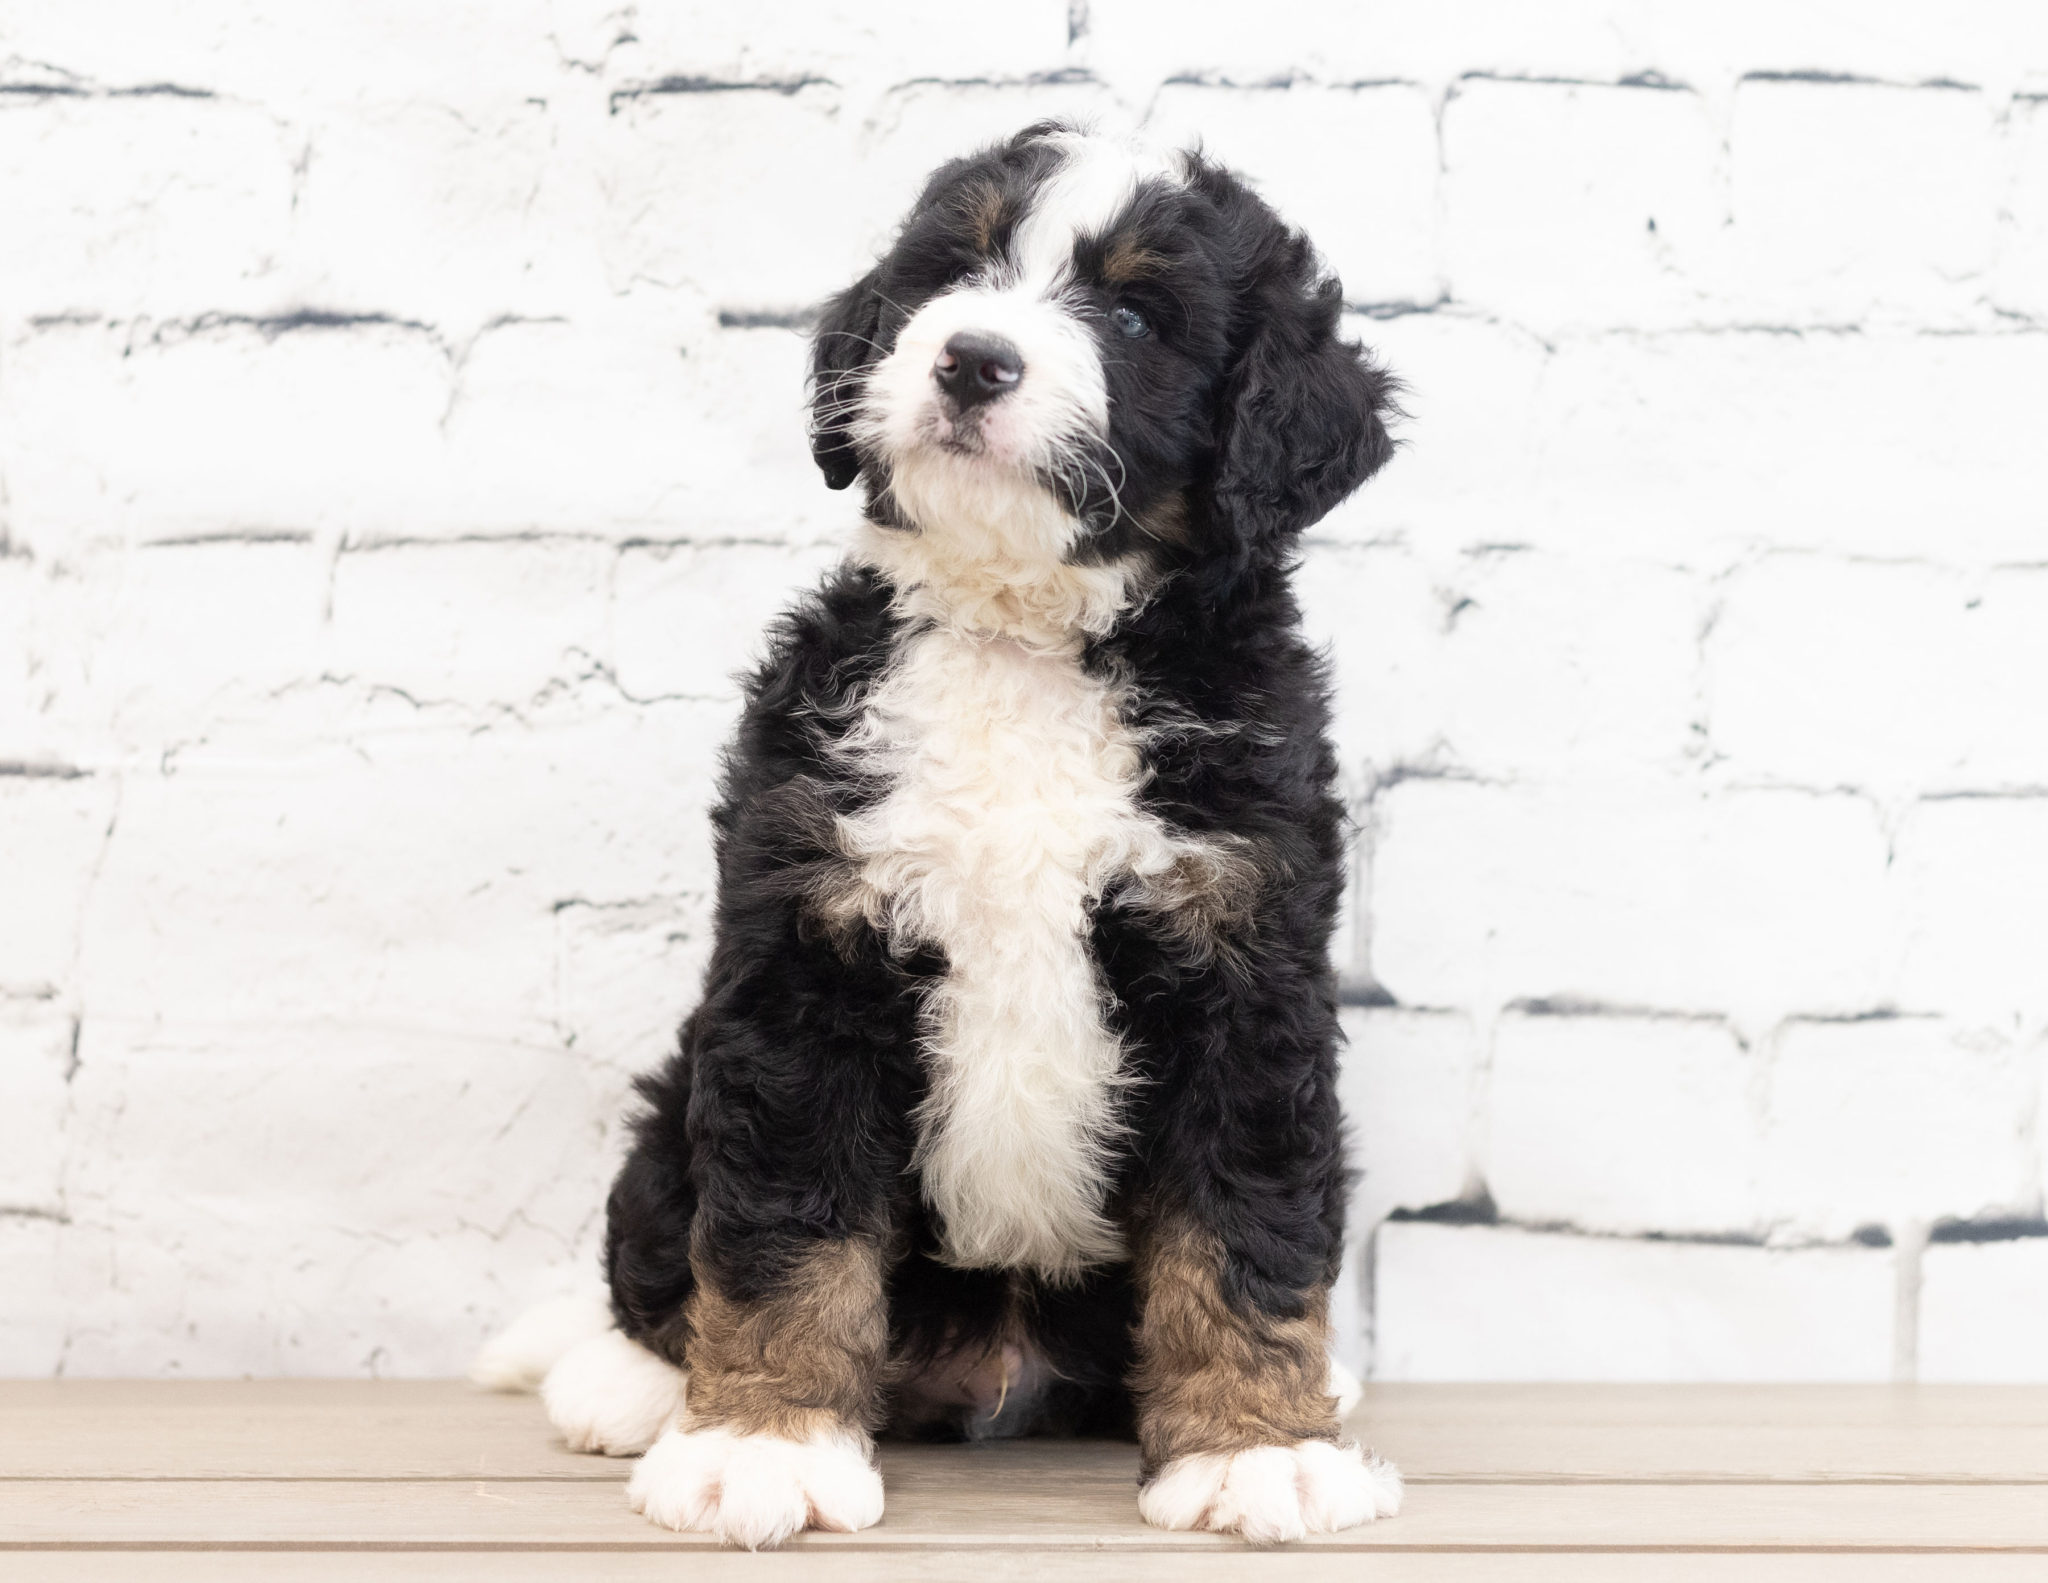 A Poodles 2 Doodles litter of Standard Bernedoodles raised in Iowa